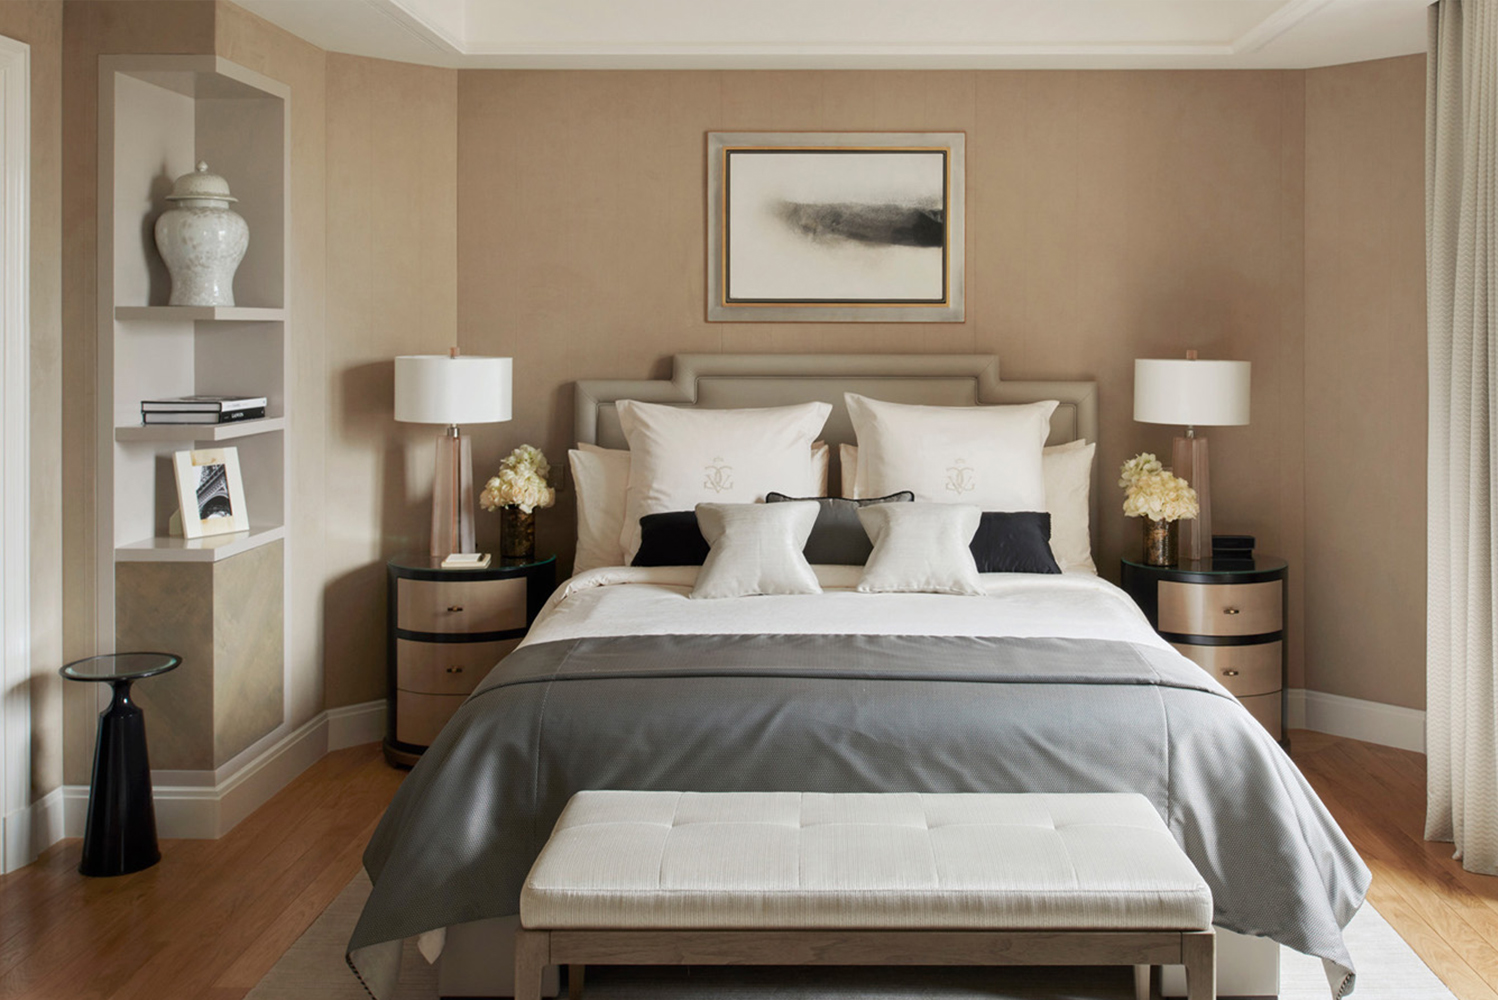 The design team created a design scheme that blends with the hotel's existing elegant décor.